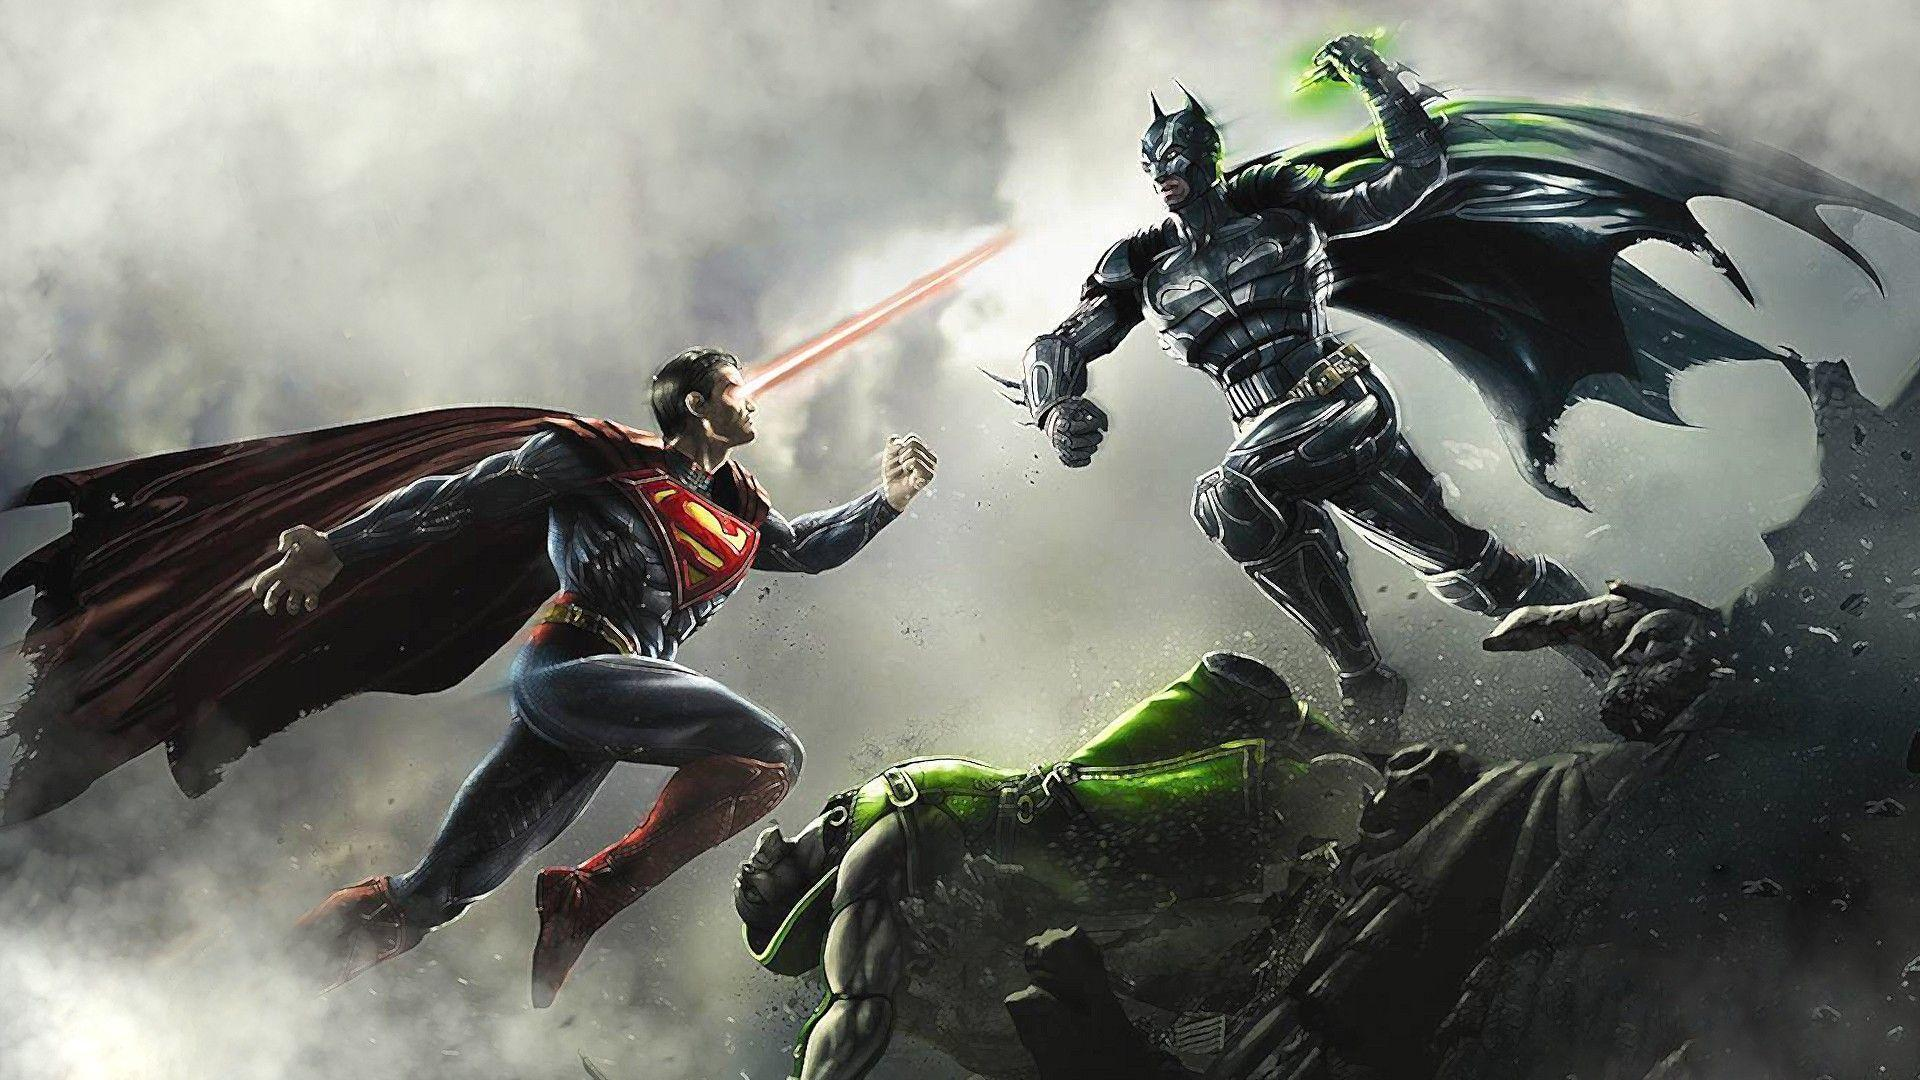 Injustice Wallpapers Top Free Injustice Backgrounds Wallpaperaccess